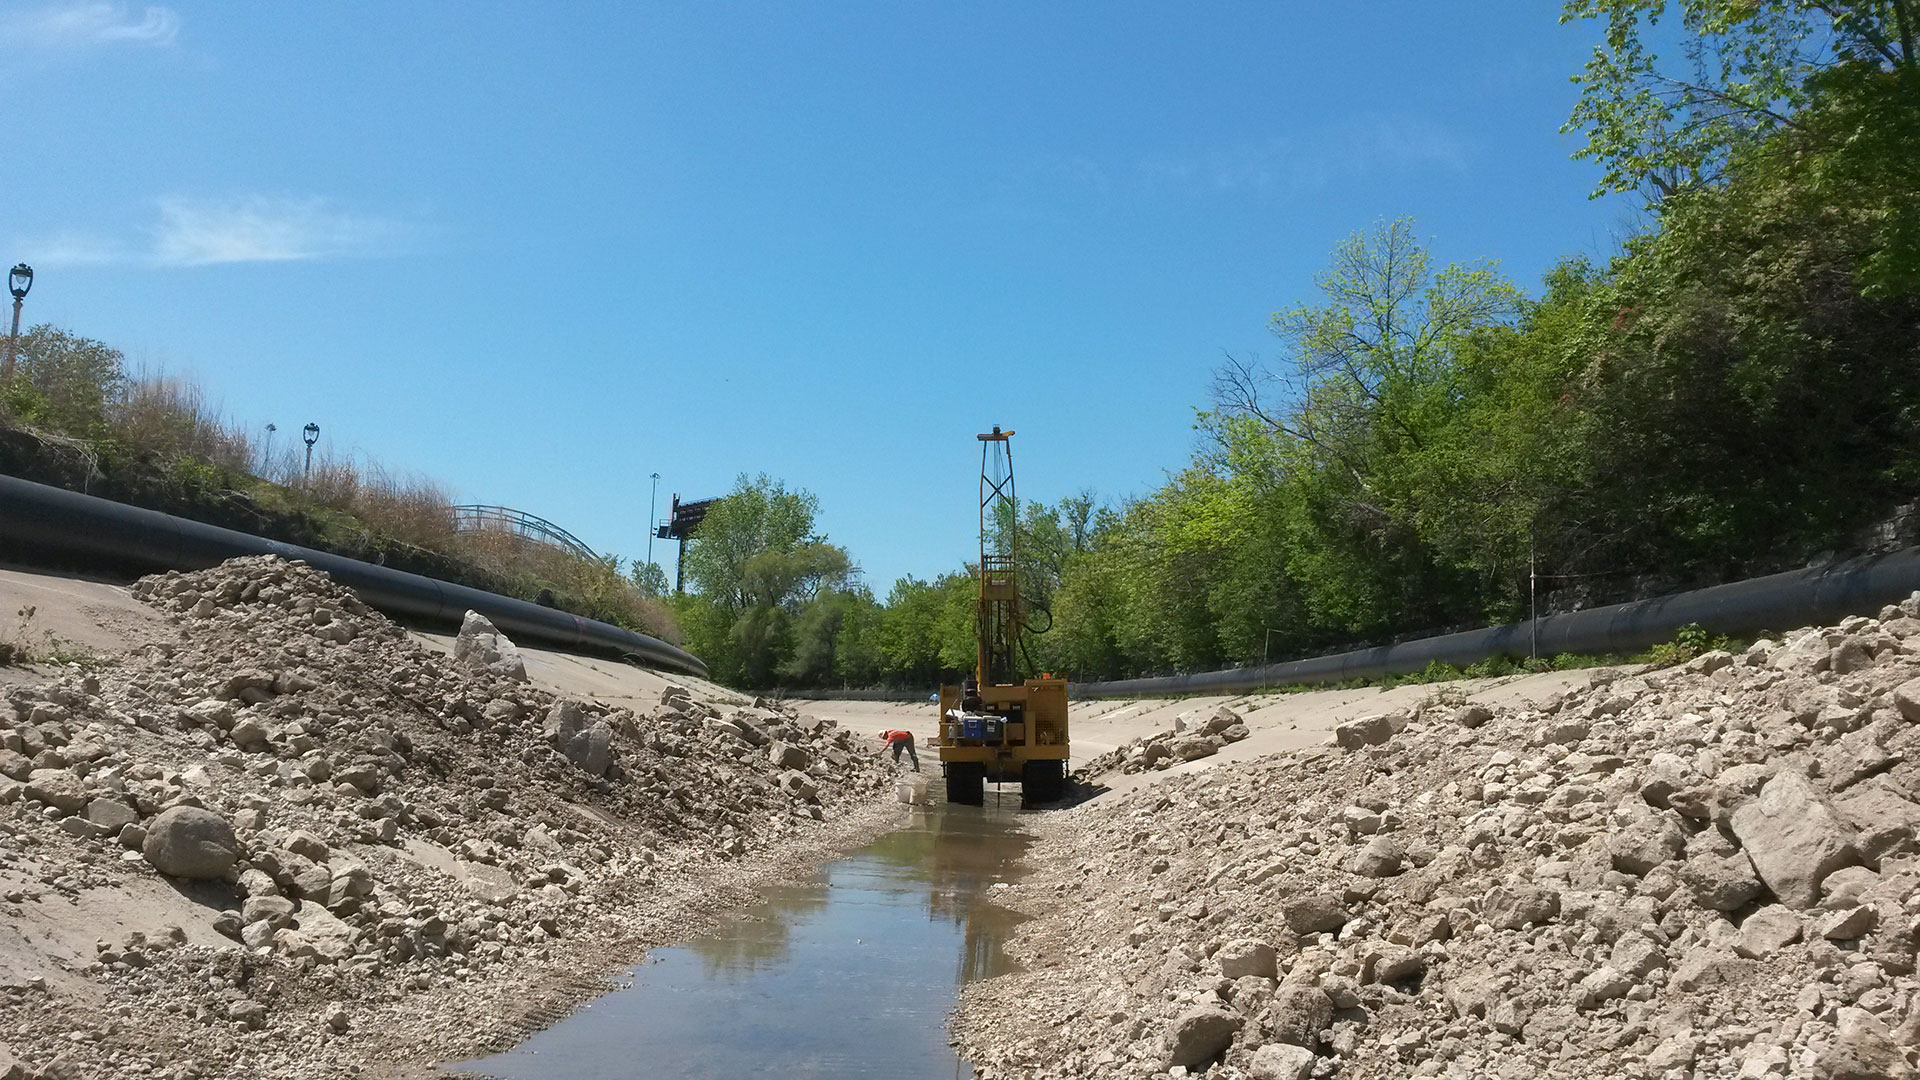 Menomonee River Environmental Restoration